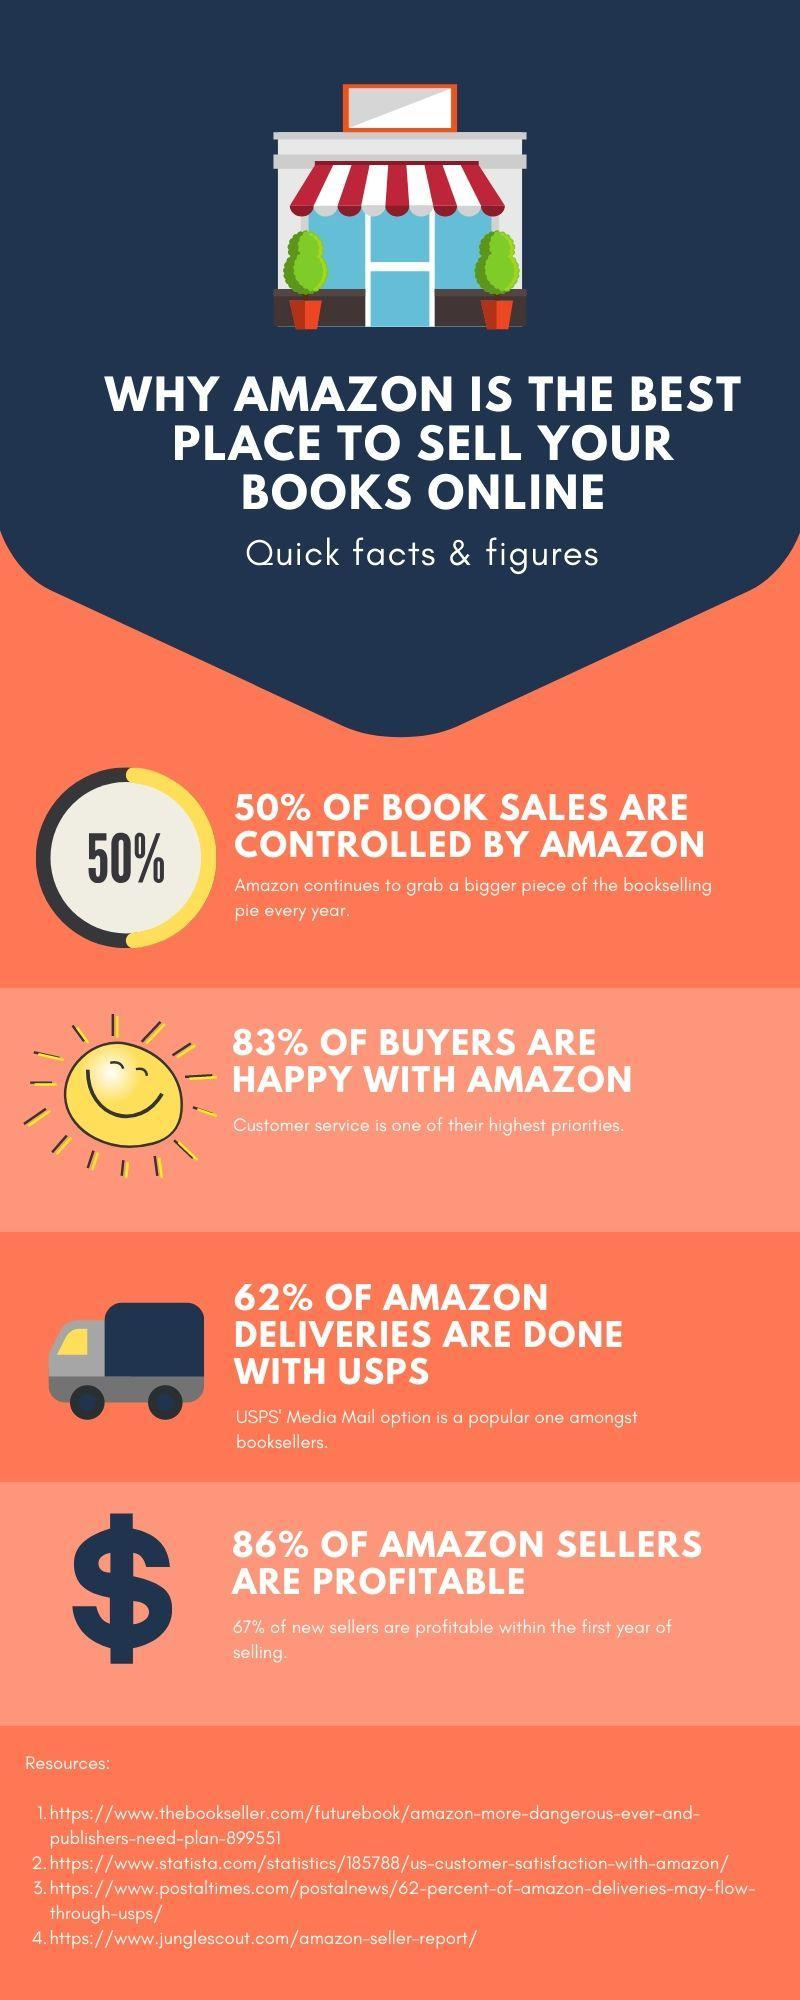 Why Amazon is the best place to sell books